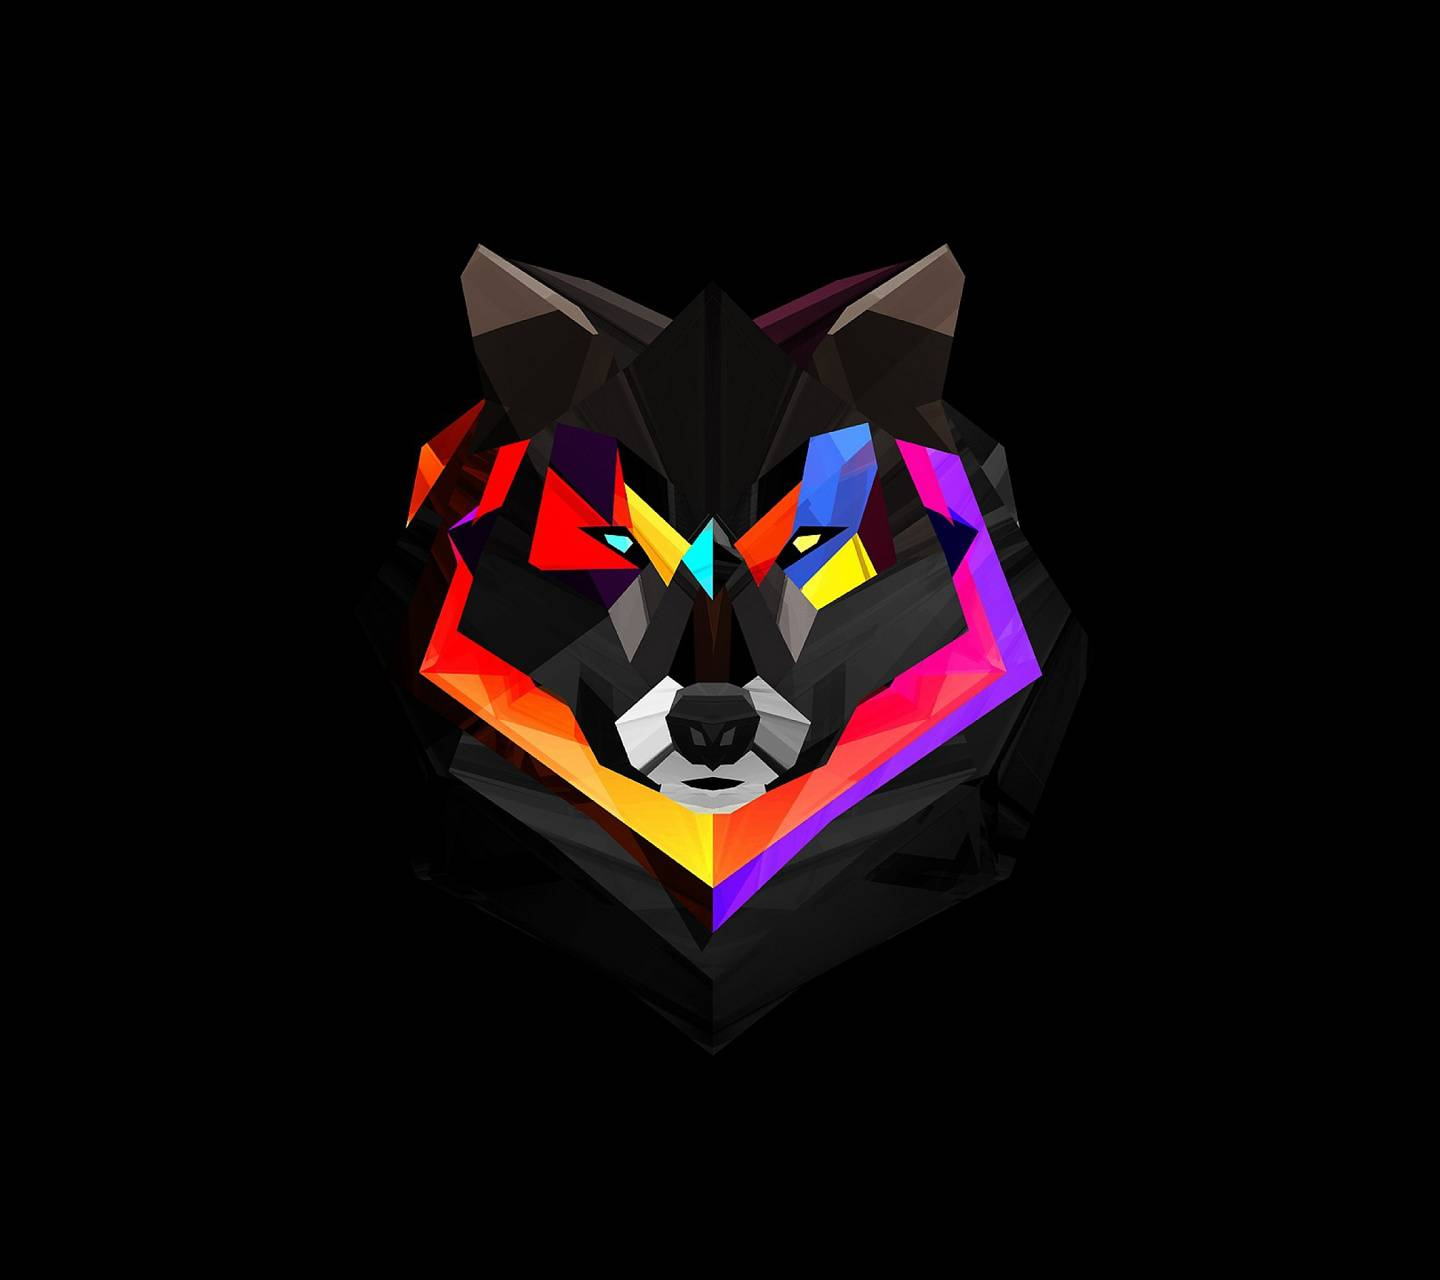 Polygon Wolf Wallpaper By Dudeski1988 82 Free On ZEDGE™